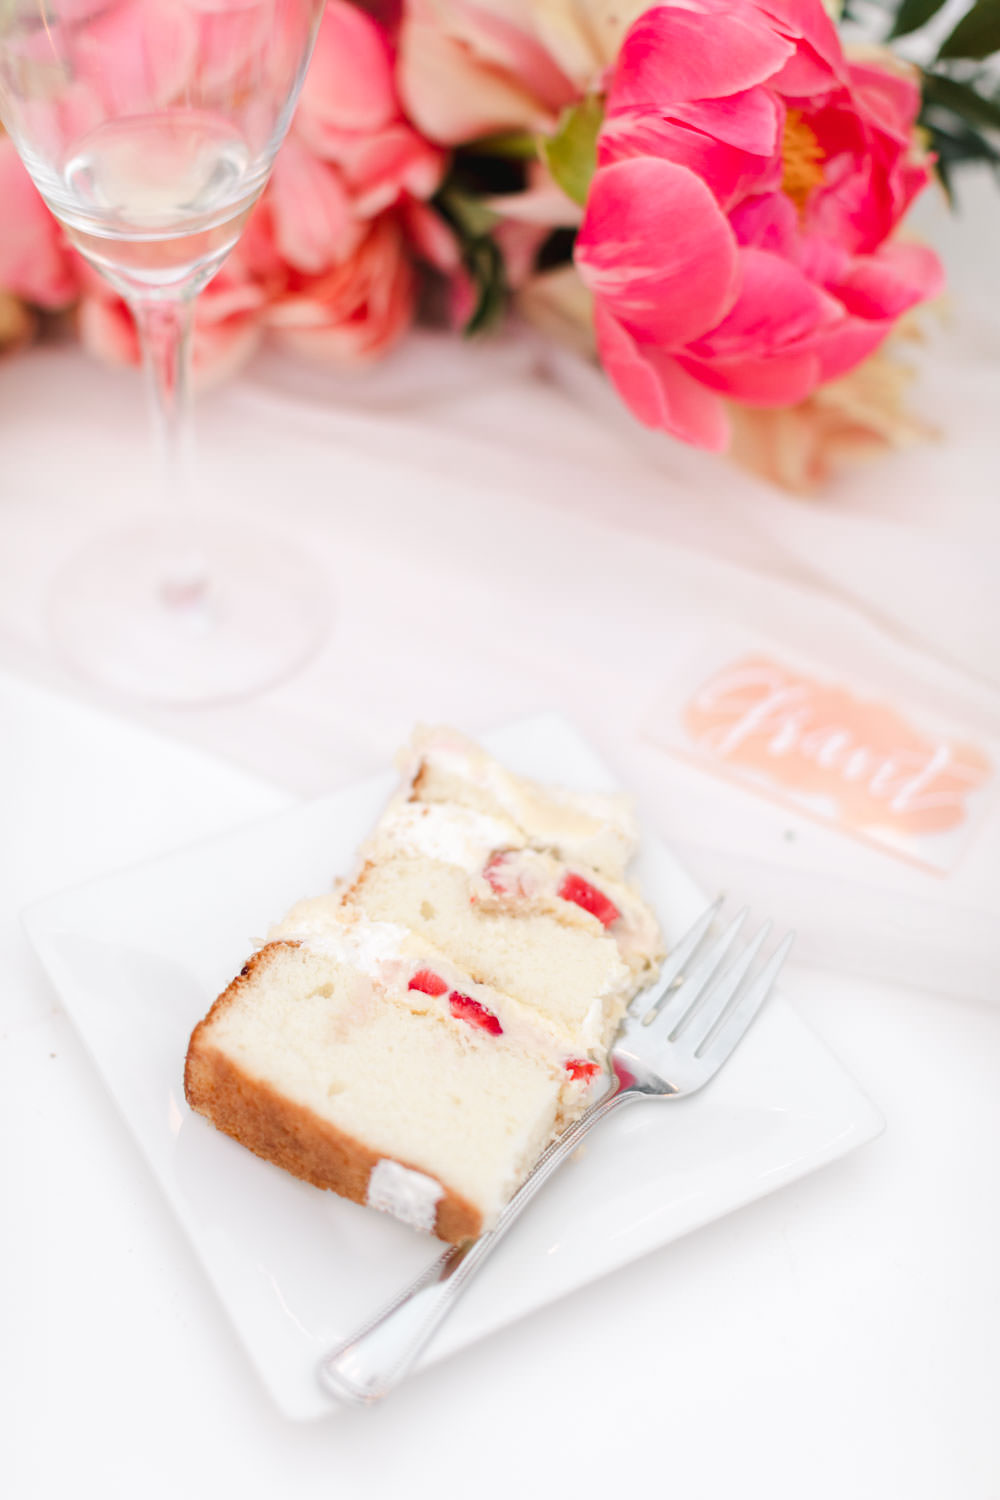 White cake with strawberry cream filling in front of pink flowers, Cavin Elizabeth Photography